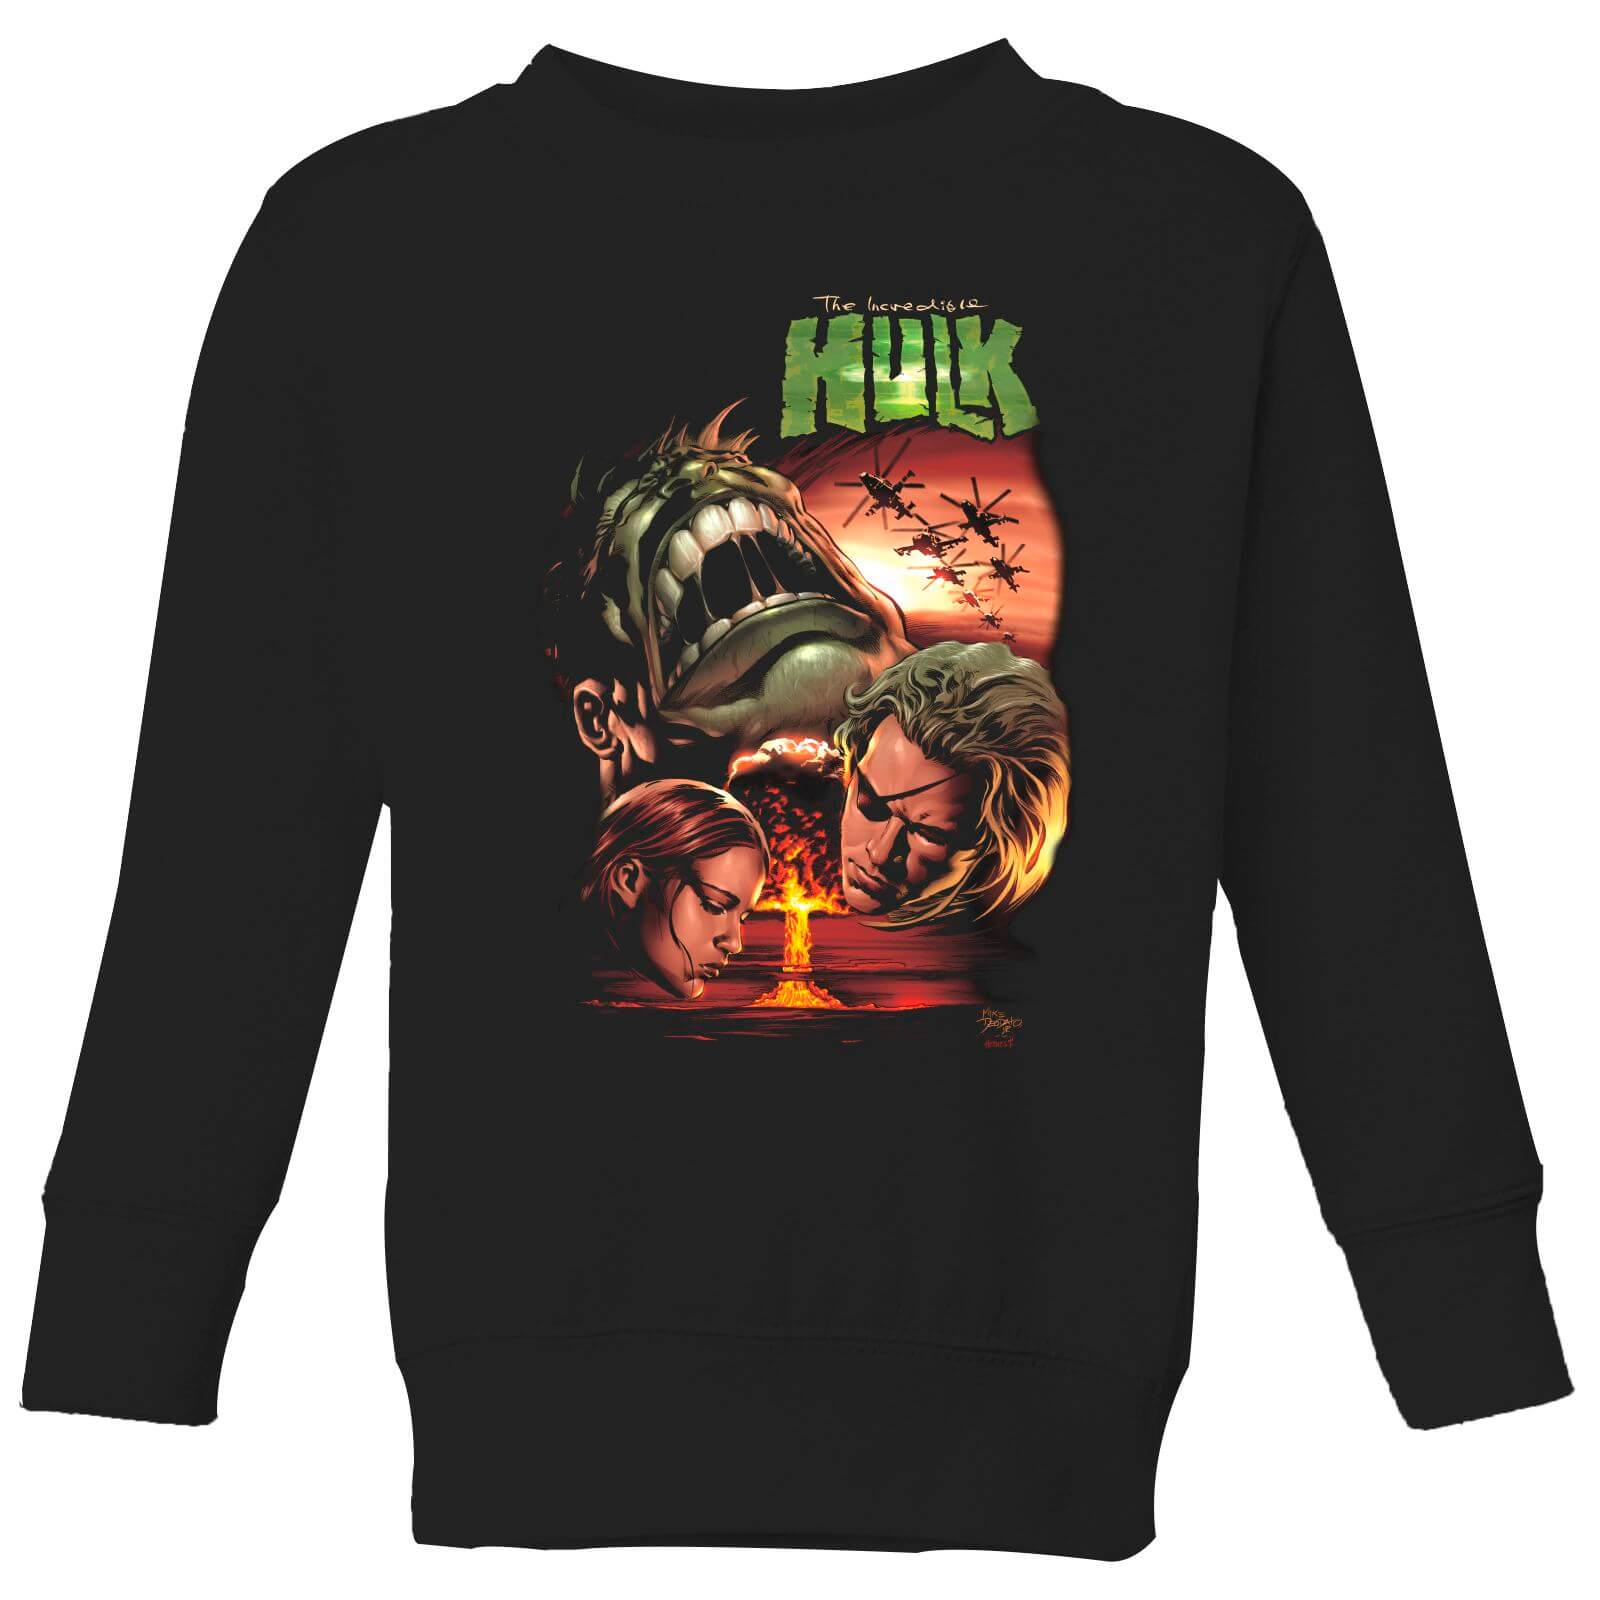 Marvel Incredible Hulk Dead Like Me Kids' Sweatshirt - Black - 5-6 Years - Black